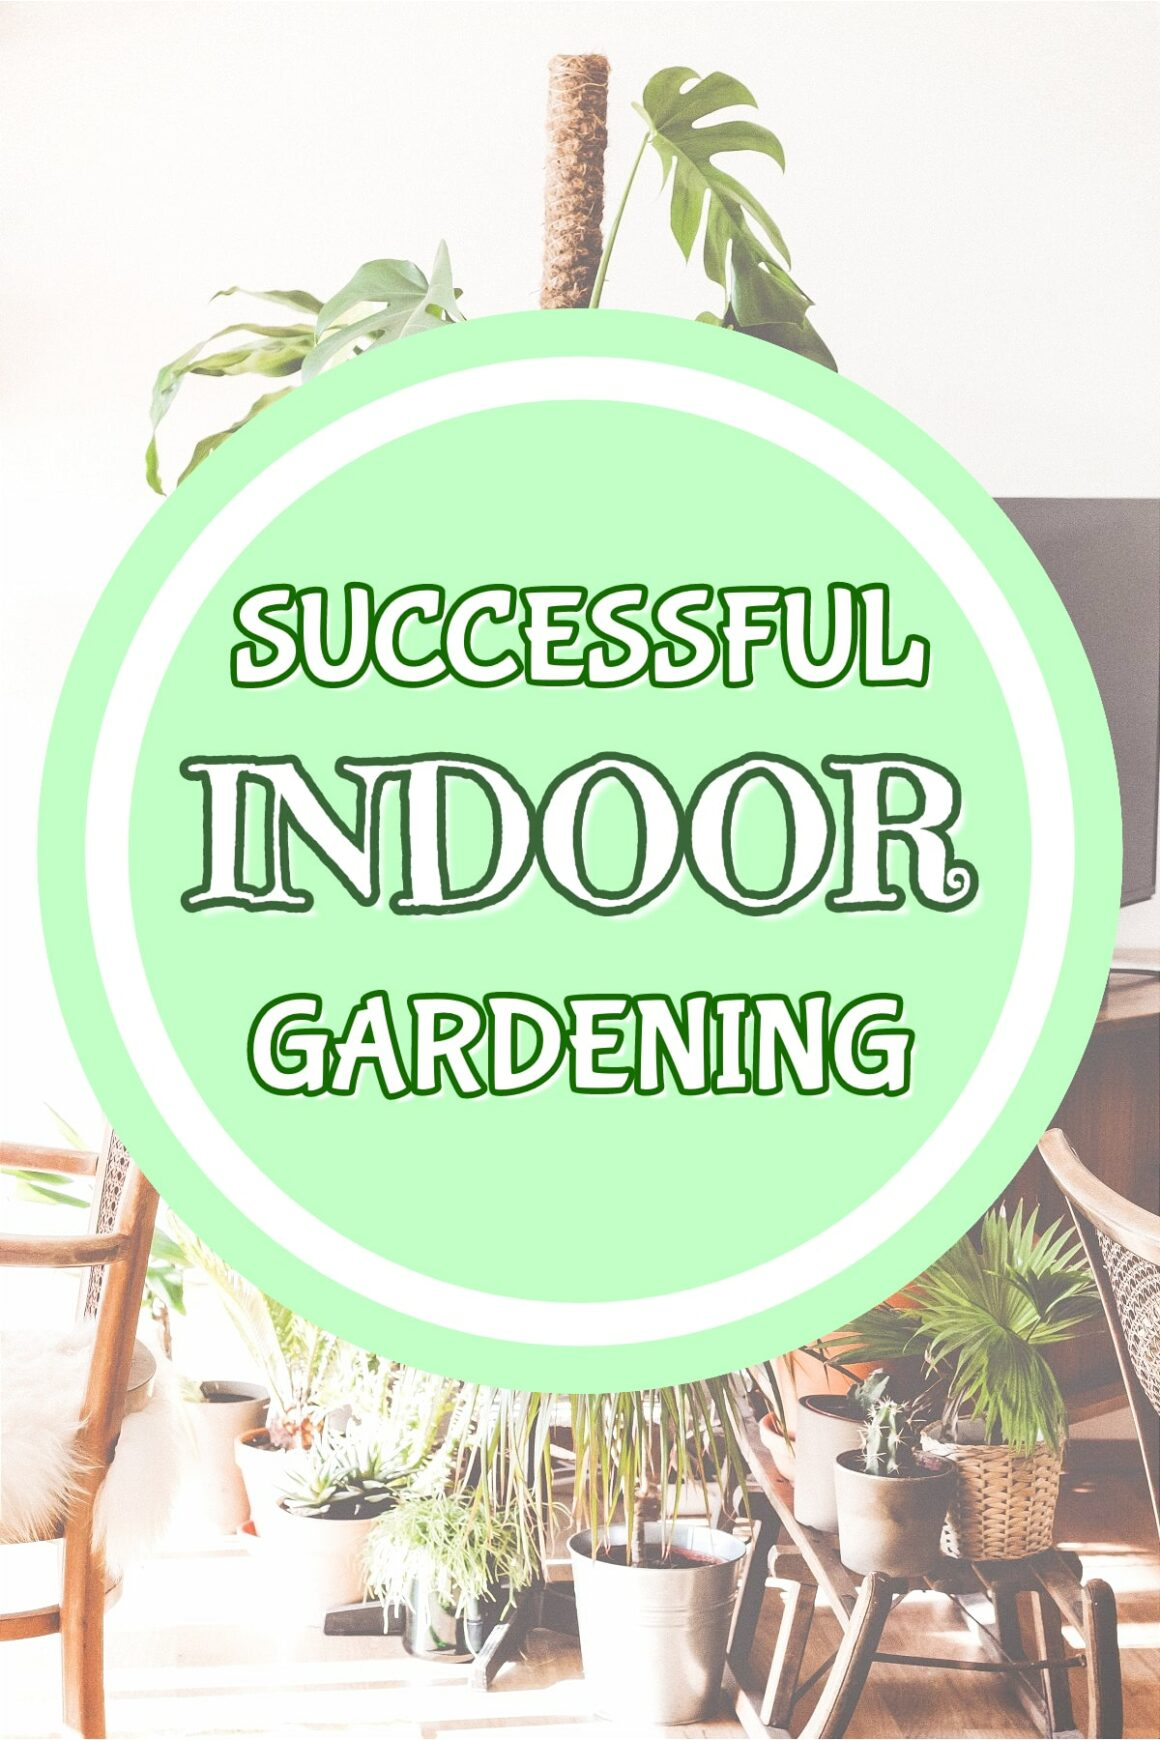 Successful Indoor Gardening